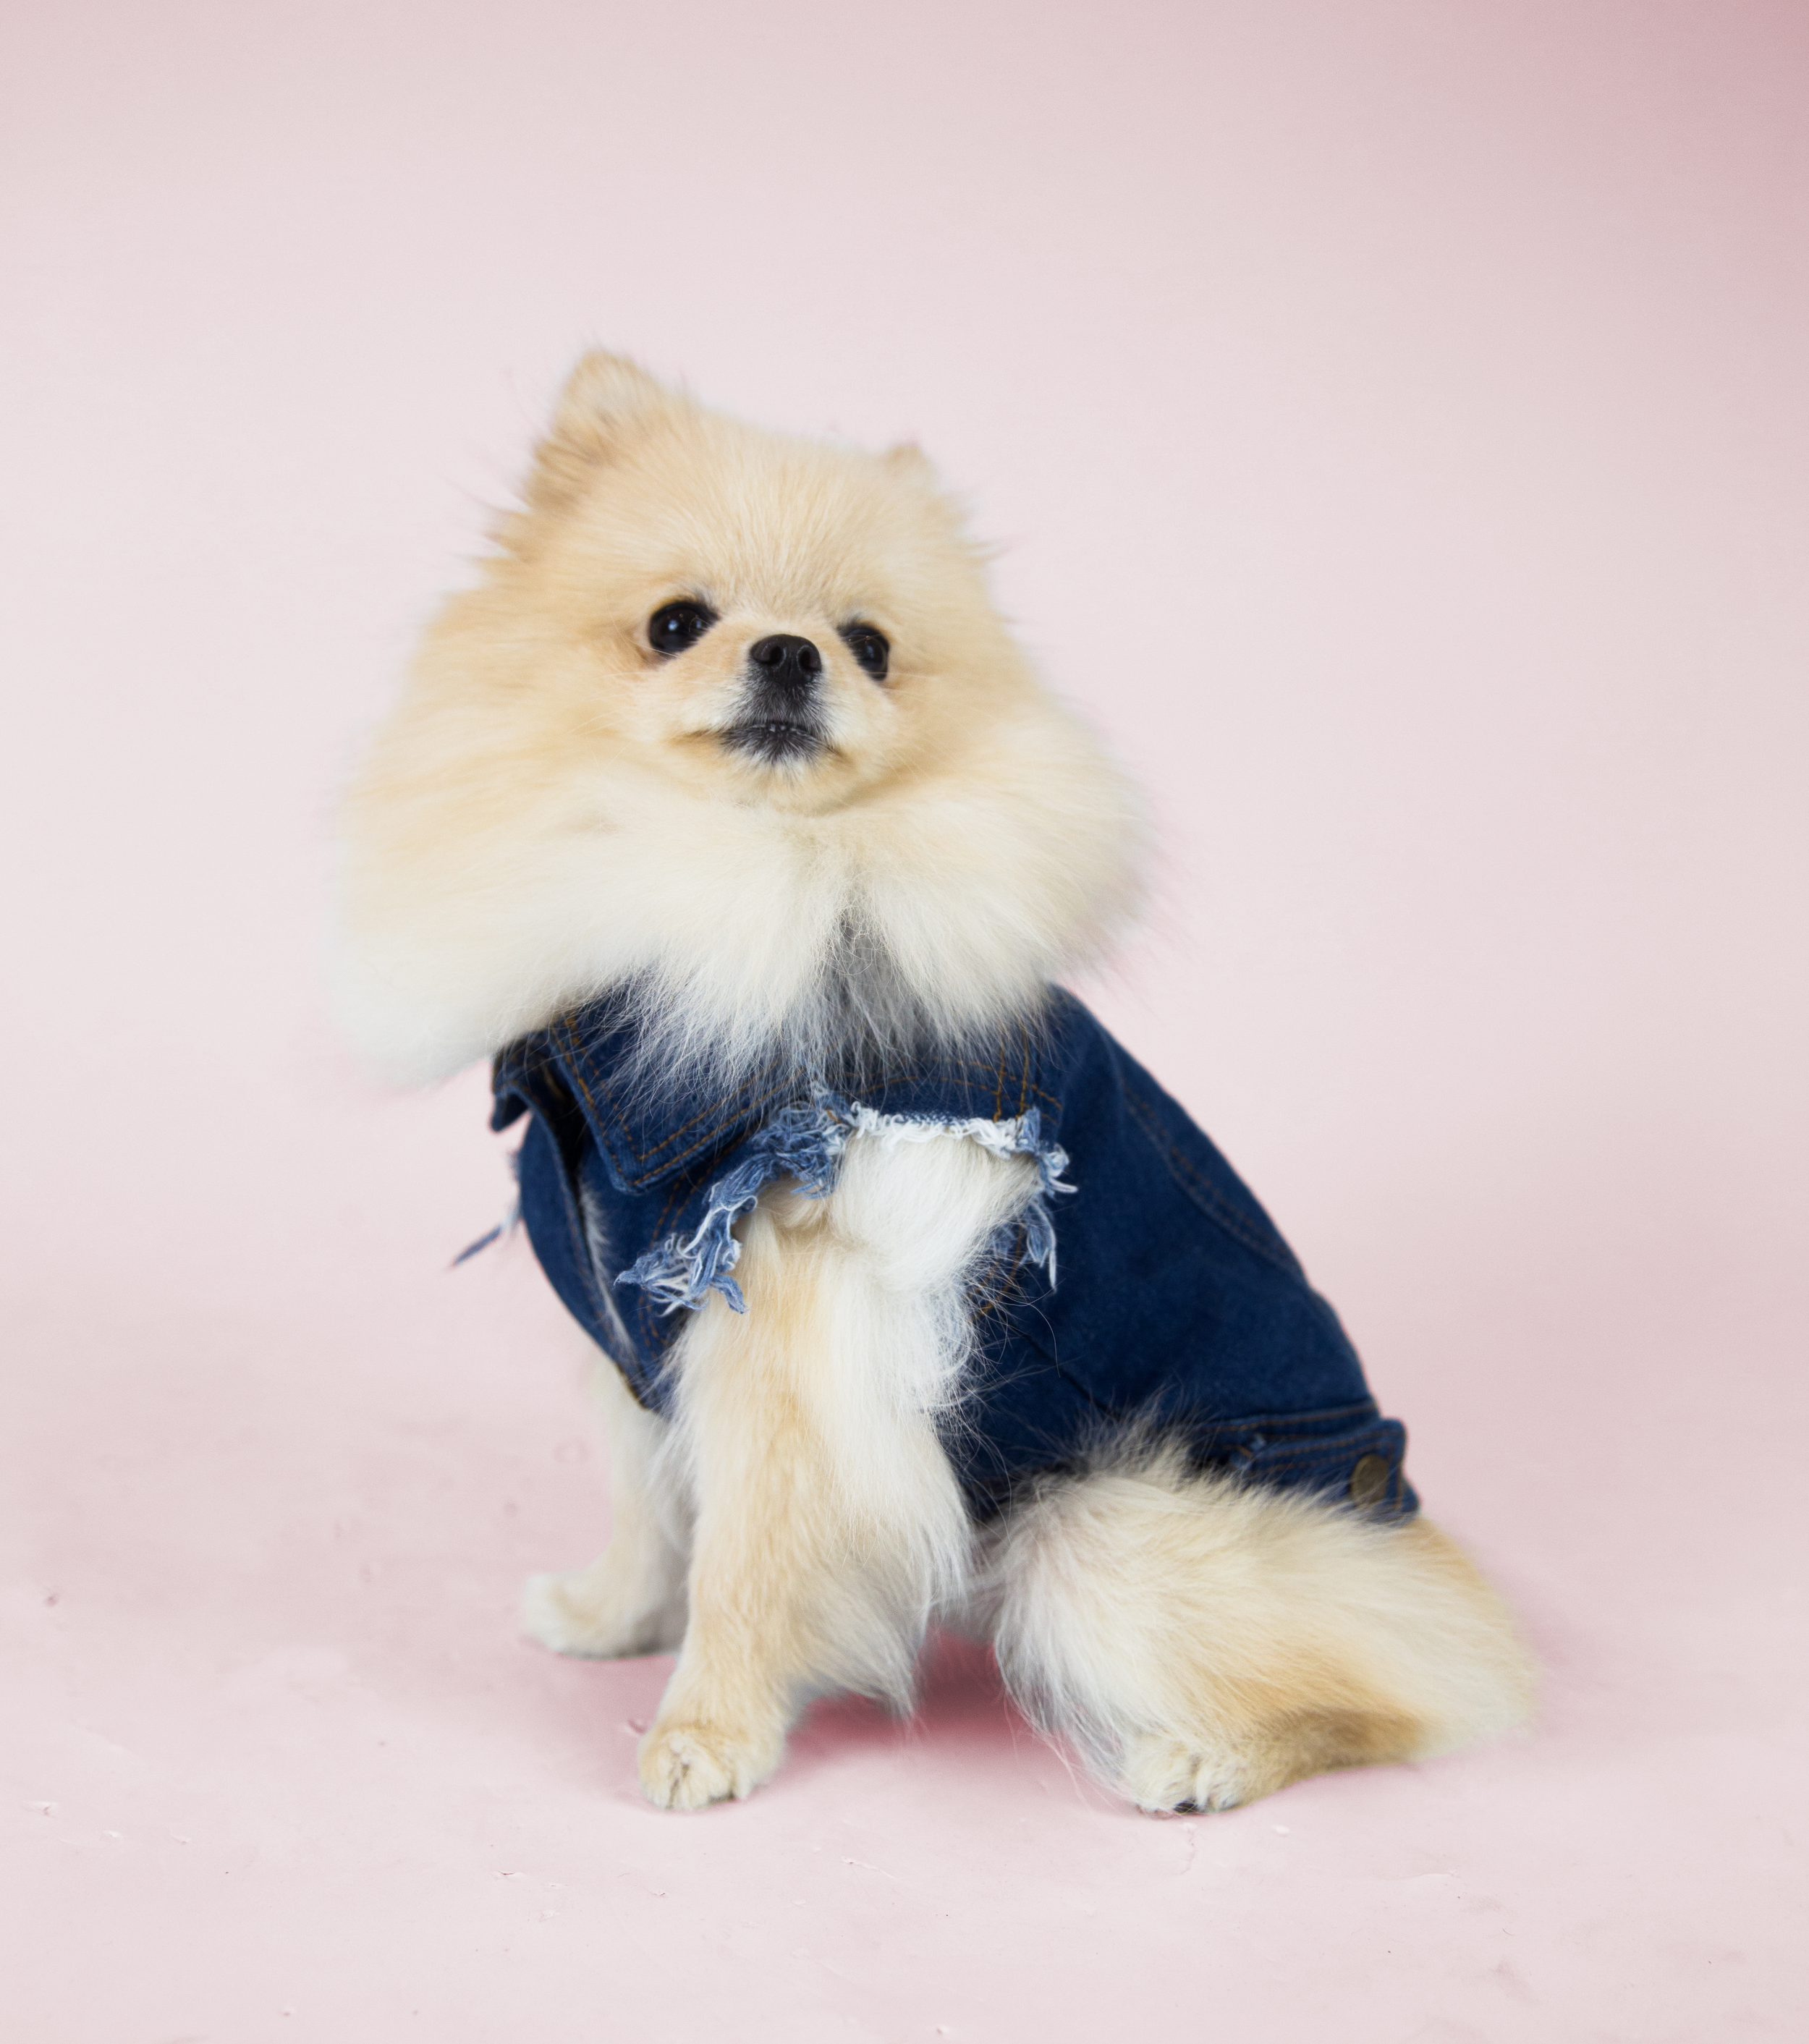 Favourite Goodboy Swag - Sophie looks great in just about anything, obviously.  But if she had to choose a favourite, you'd probably find her rocking the Barker Denim Jacket.